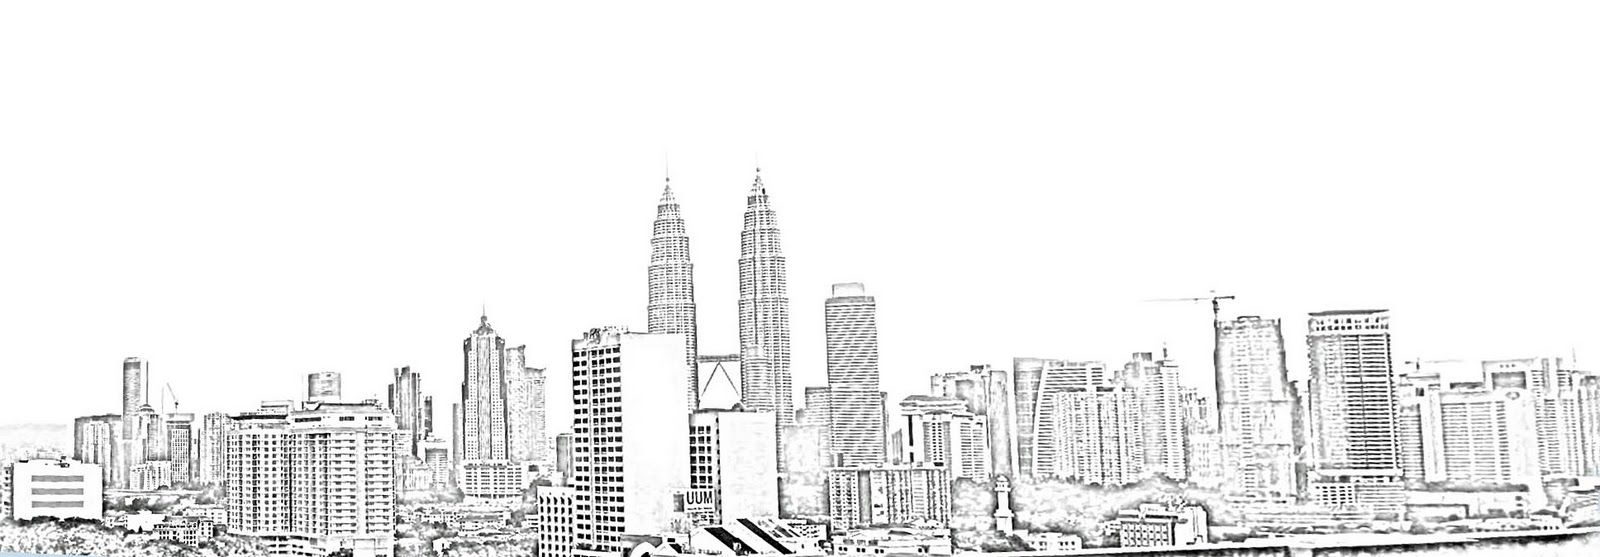 city skyline sketches - photo #12